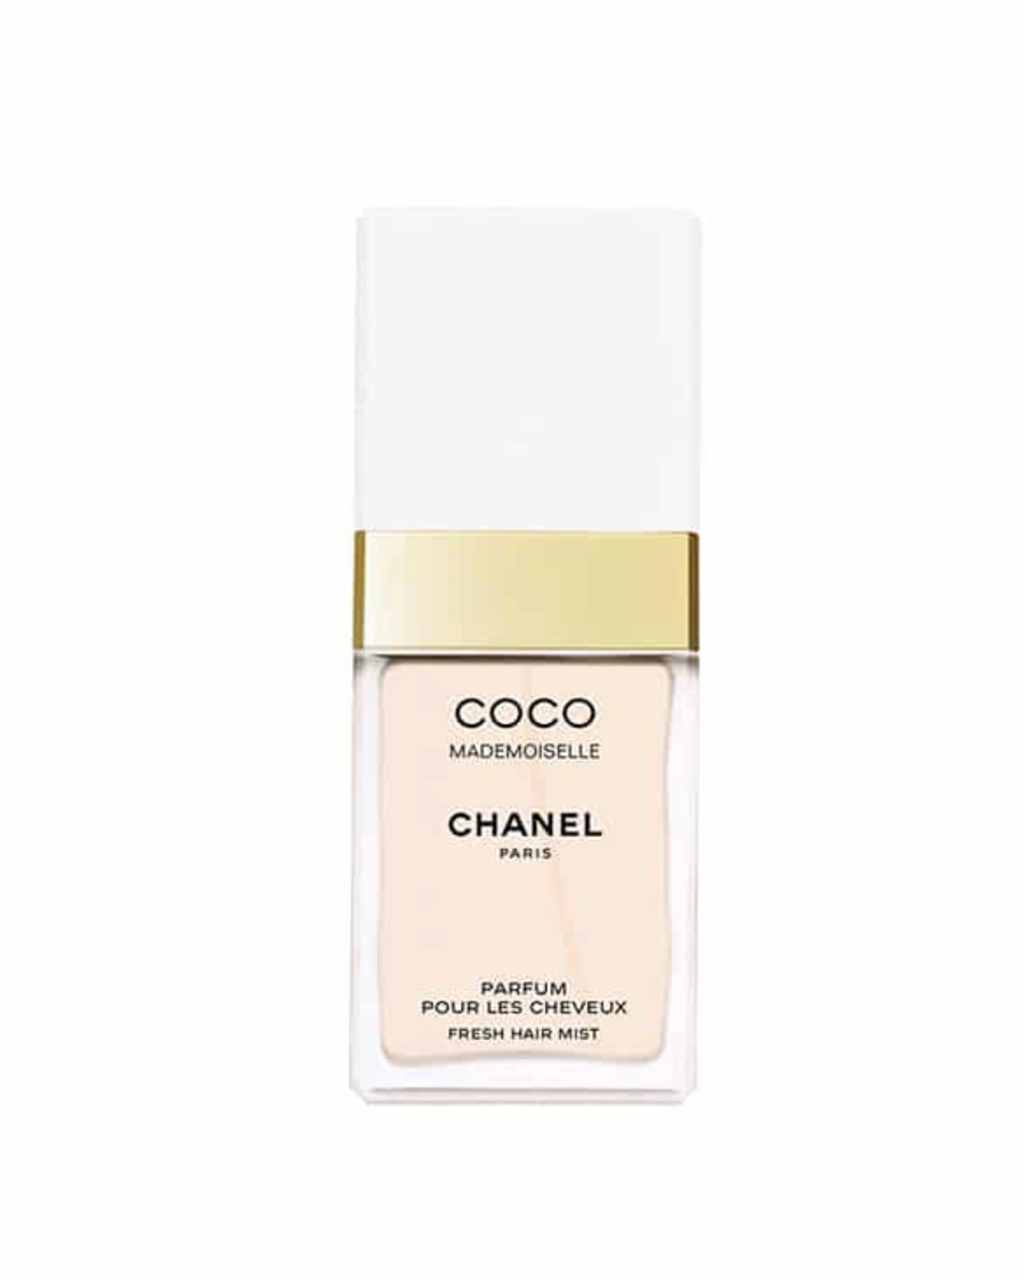 Chanel Coco Mademoiselle Fresh Hair Mist for Women 35ml - BabMakkah Stores